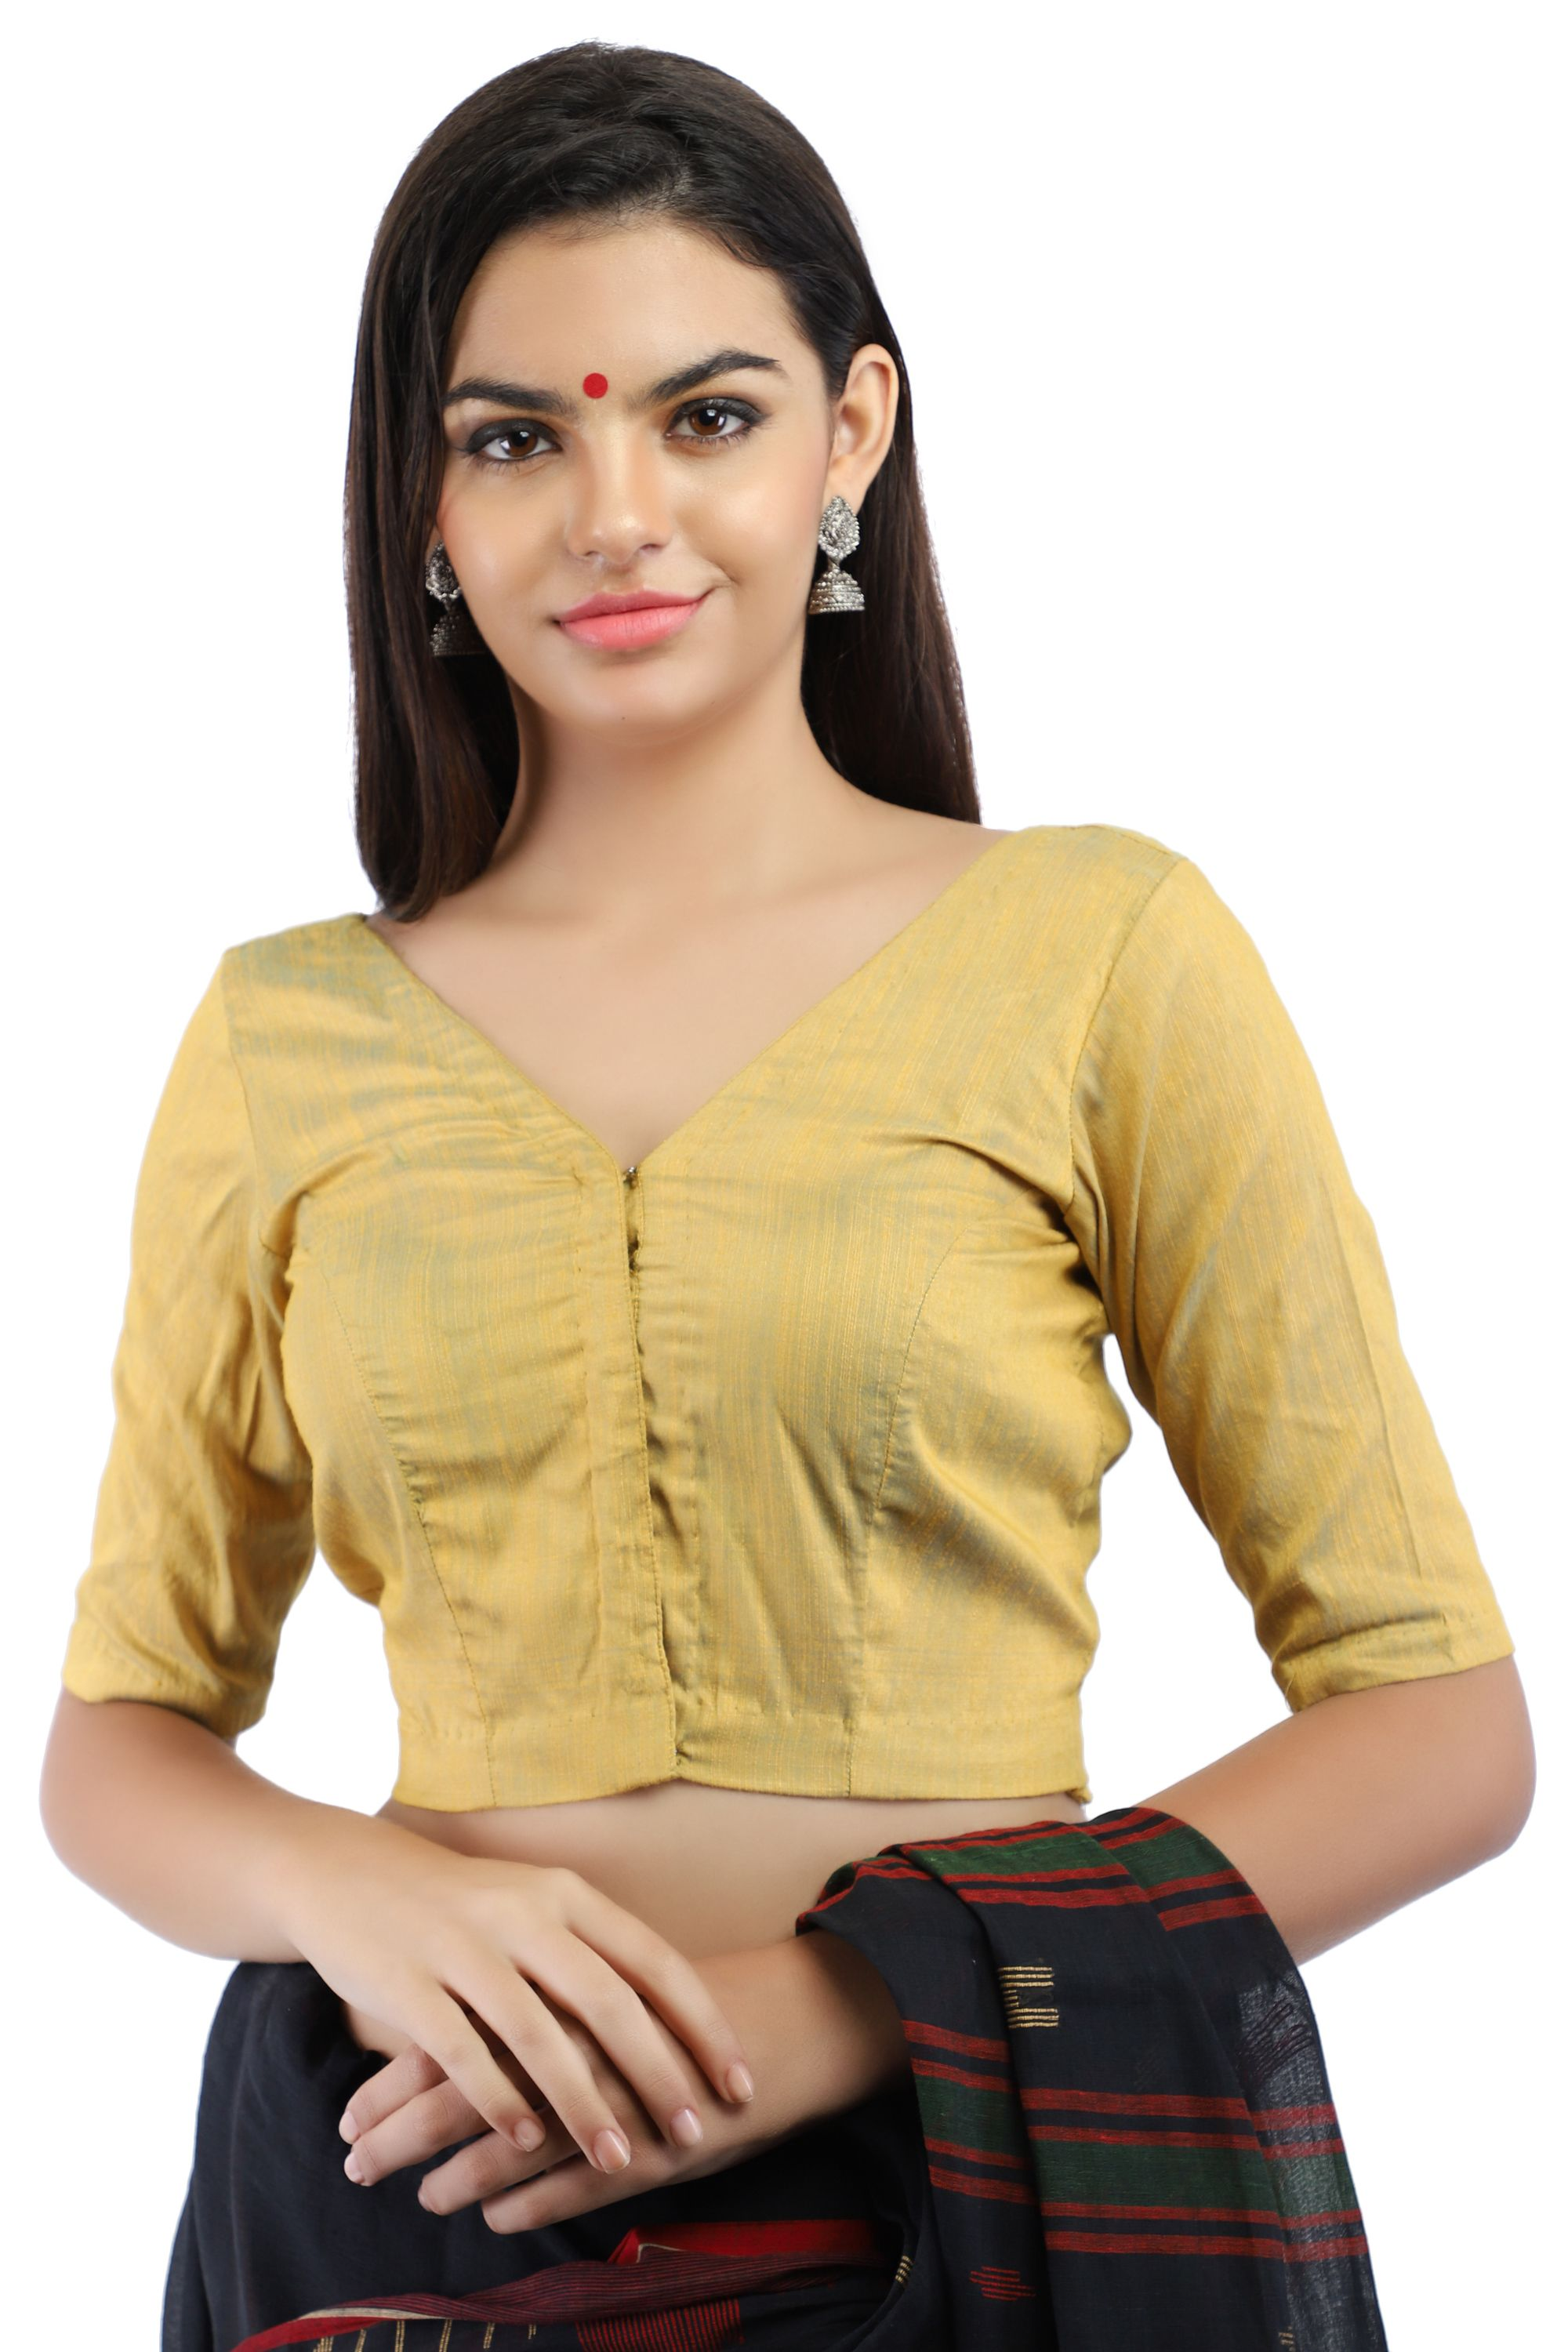 Silk Slub Yellow and Blue Dual Tone Non-Padded Blouse in V-Neck With Front Hook Closure